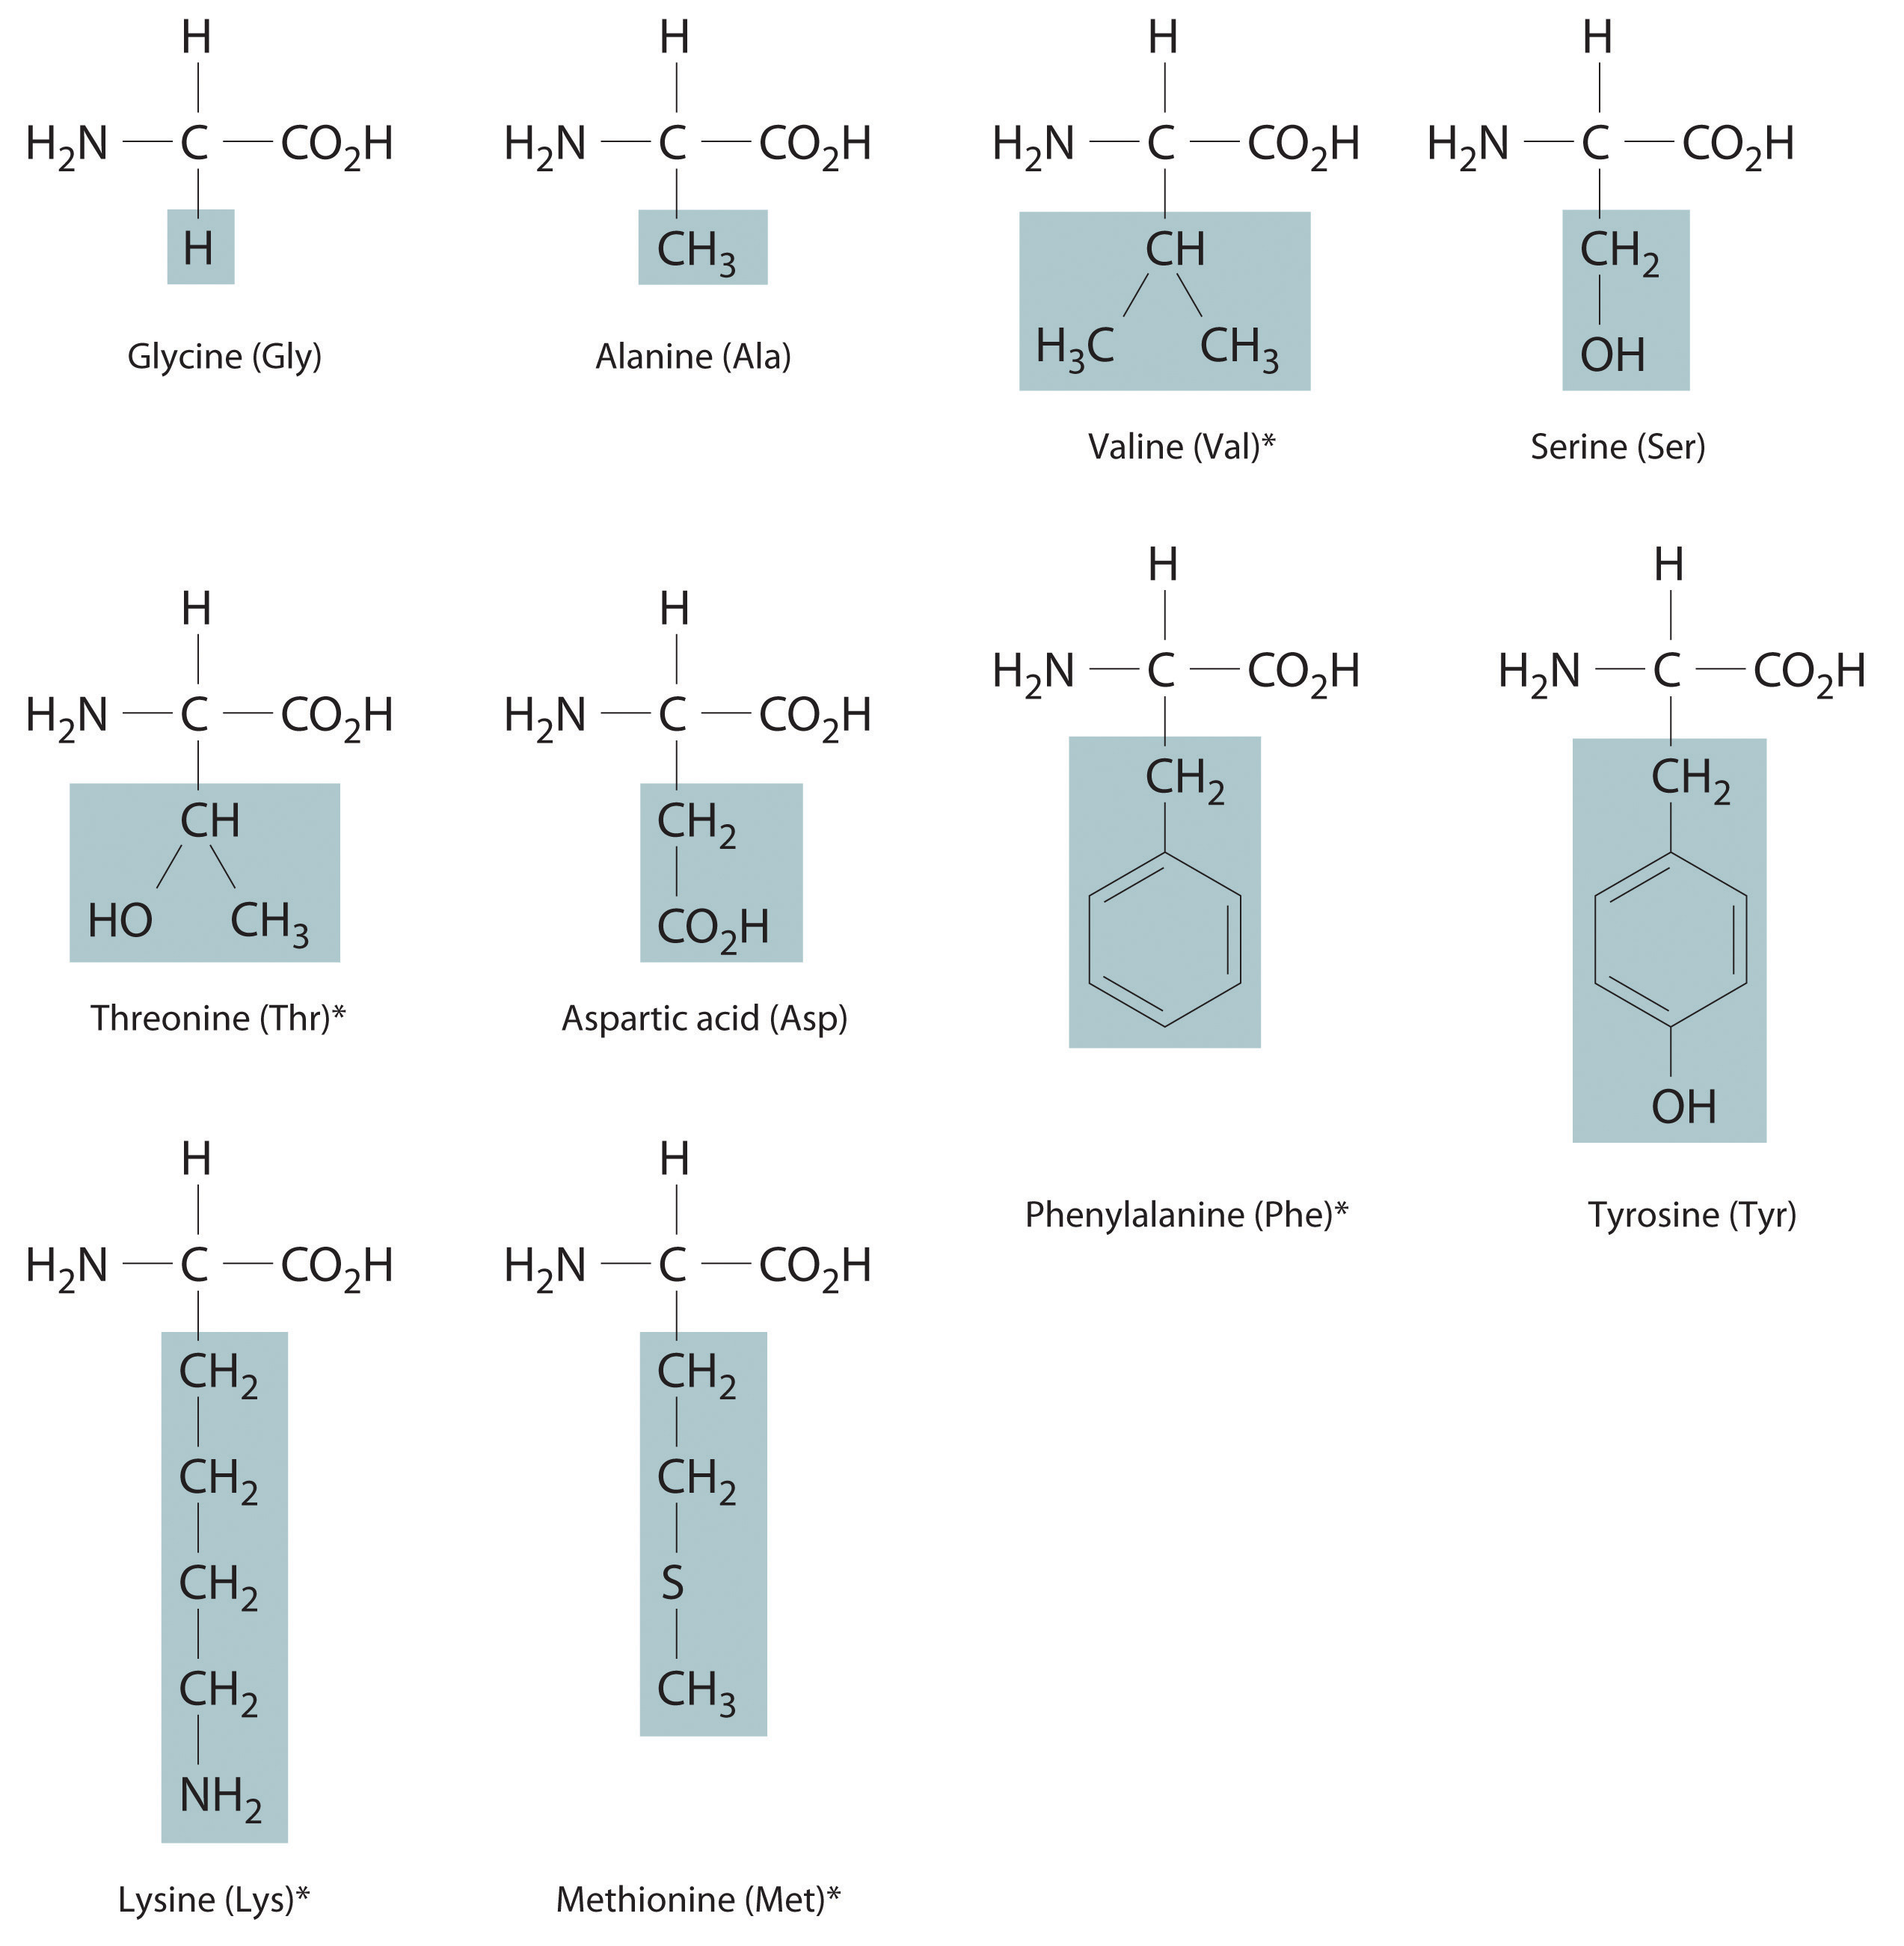 General Chemistry Principles Patterns And Applications V1 0